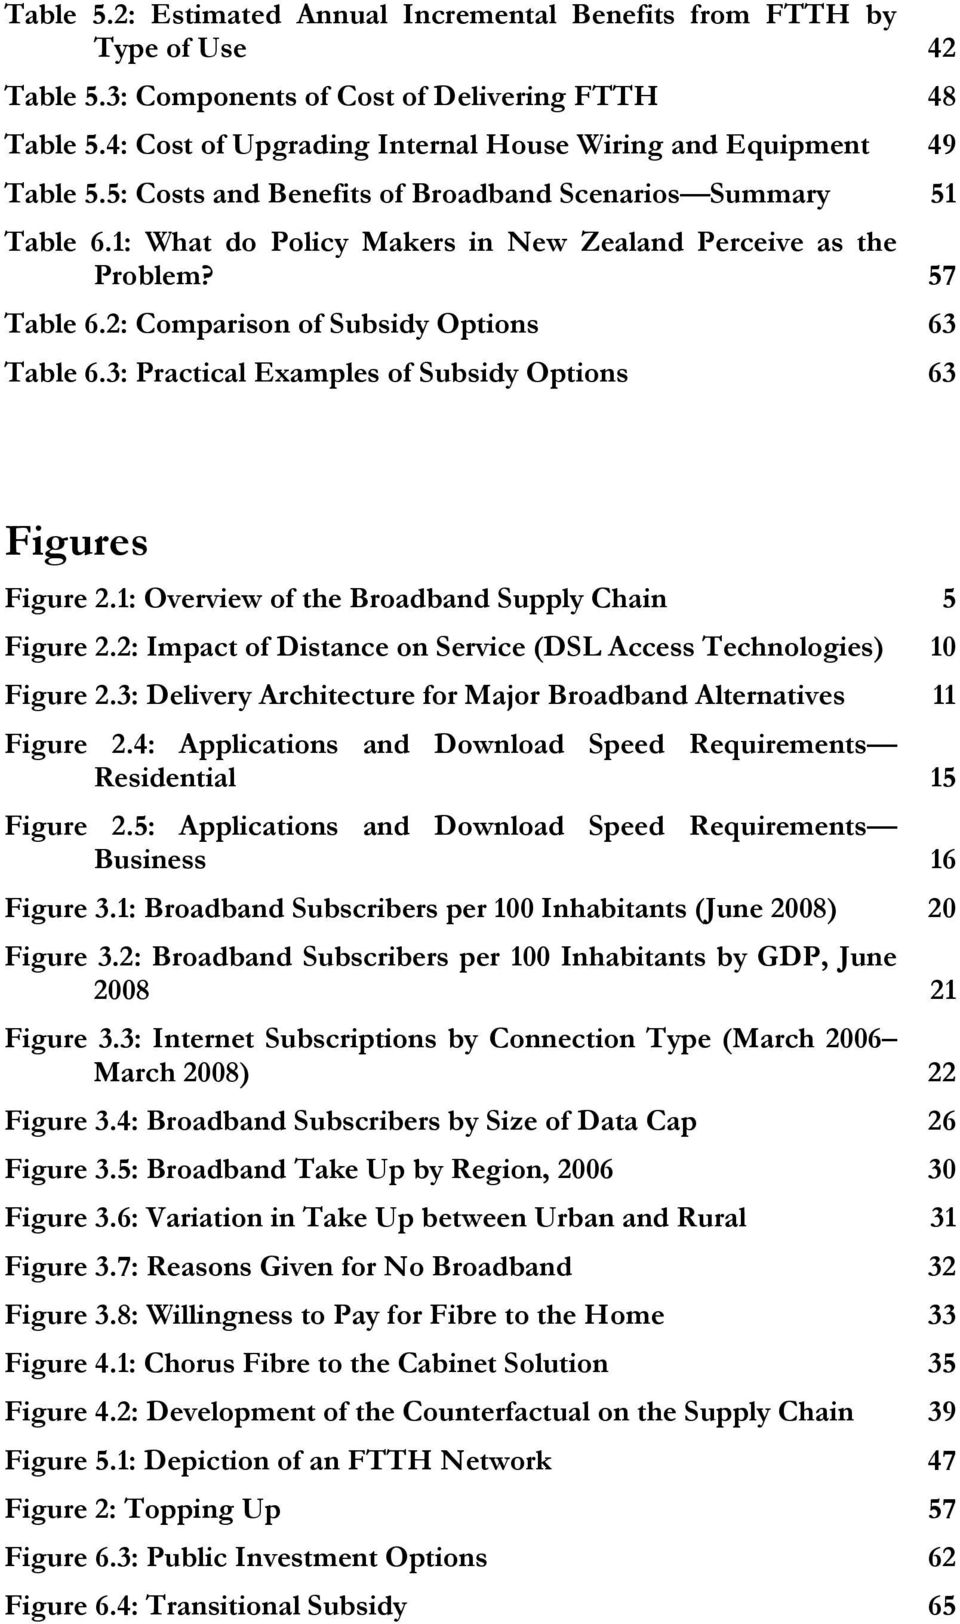 57 Table 6.2: Comparison of Subsidy Options 63 Table 6.3: Practical Examples of Subsidy Options 63 Figures Figure 2.1: Overview of the Broadband Supply Chain 5 Figure 2.